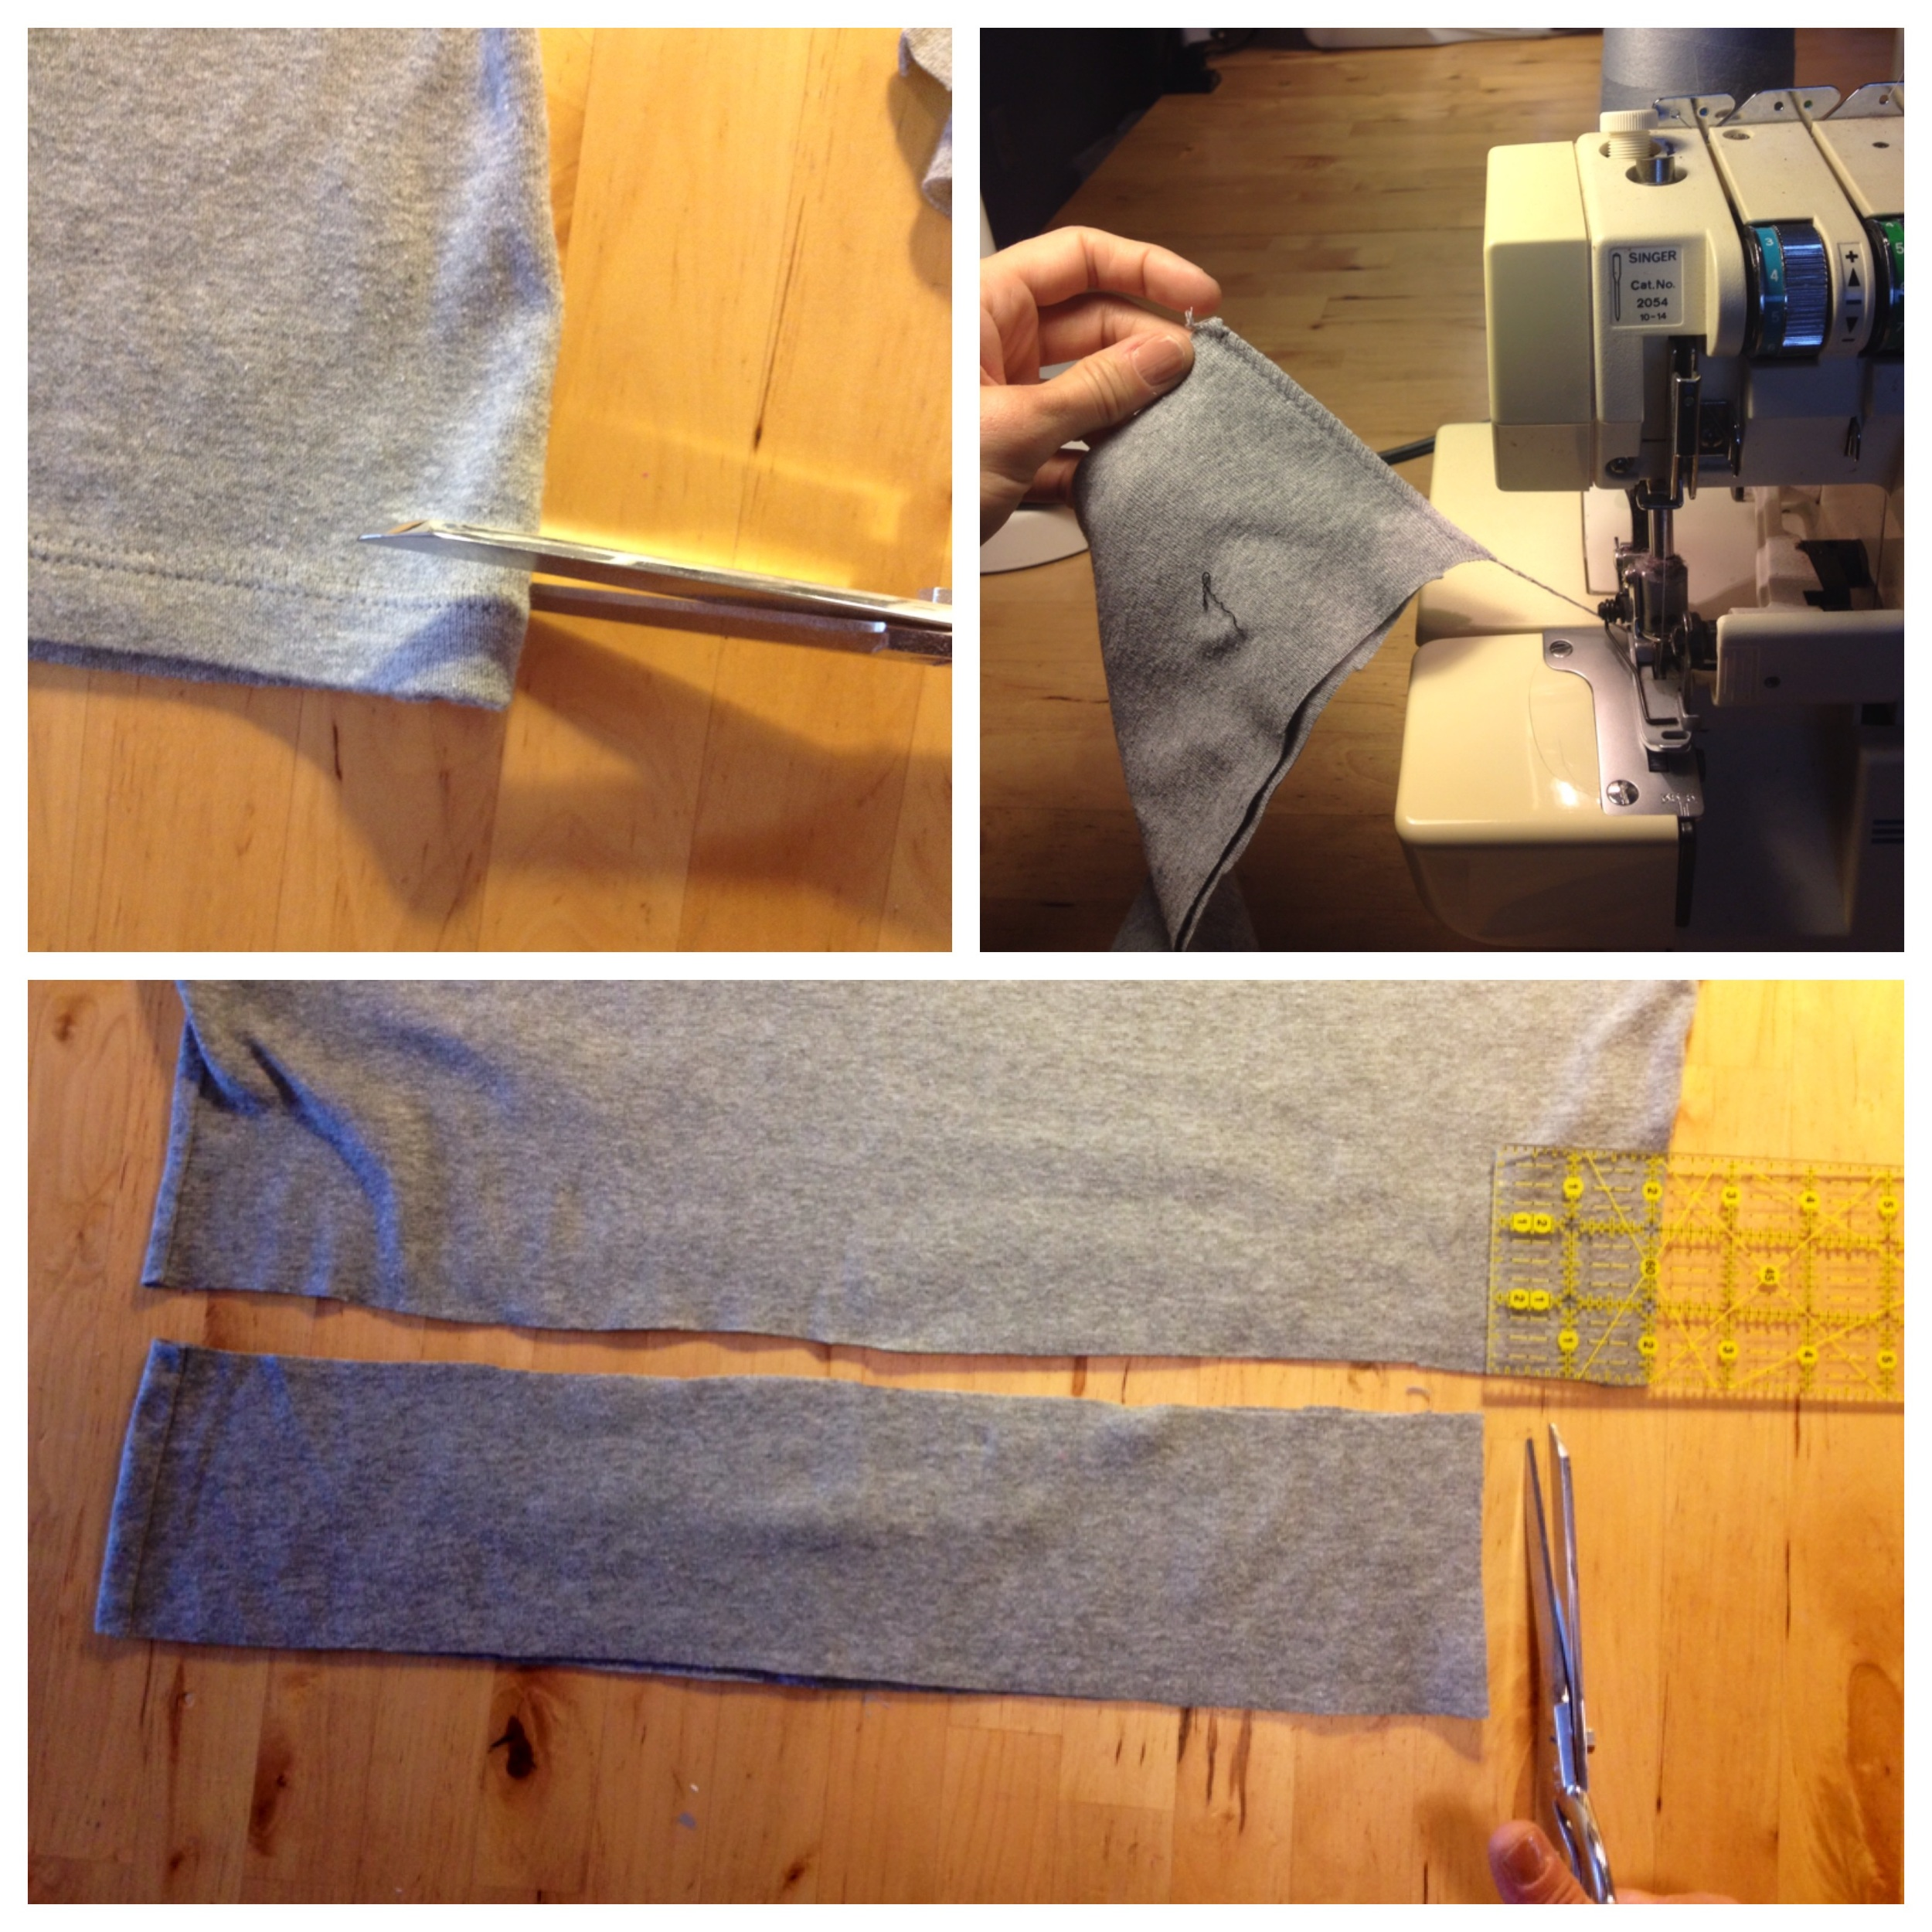 Fair Fit Sewing With Sergers Knitwear Workshop Demo 2